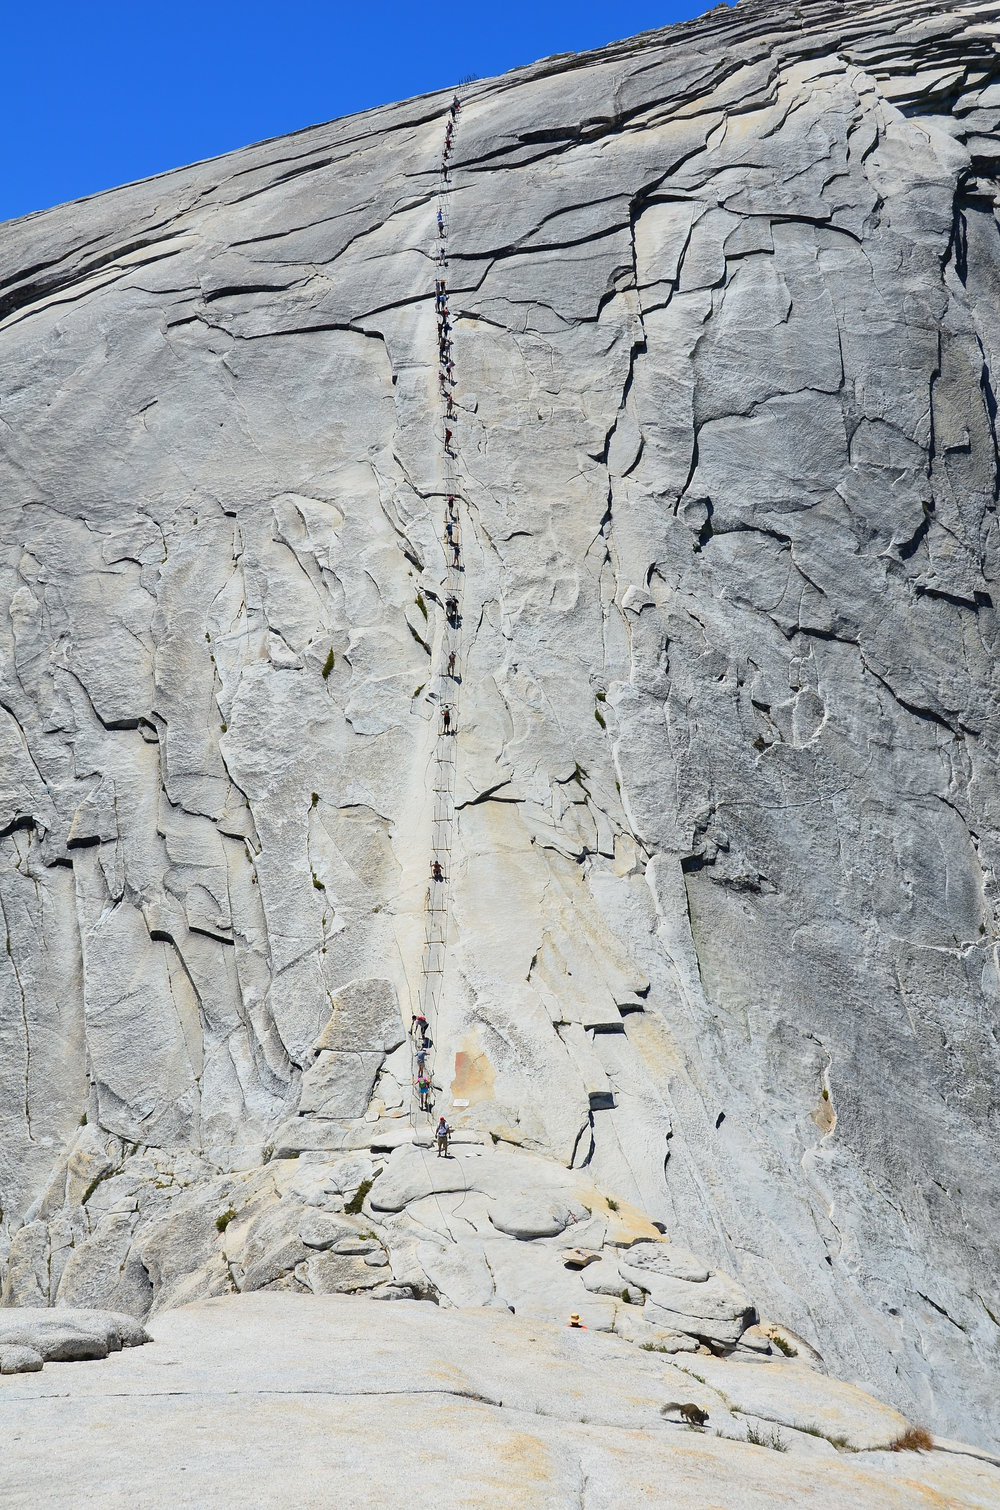 See the line of people going up the cables? Yep, hiking half dome is just as steep as this photo makes it appear.